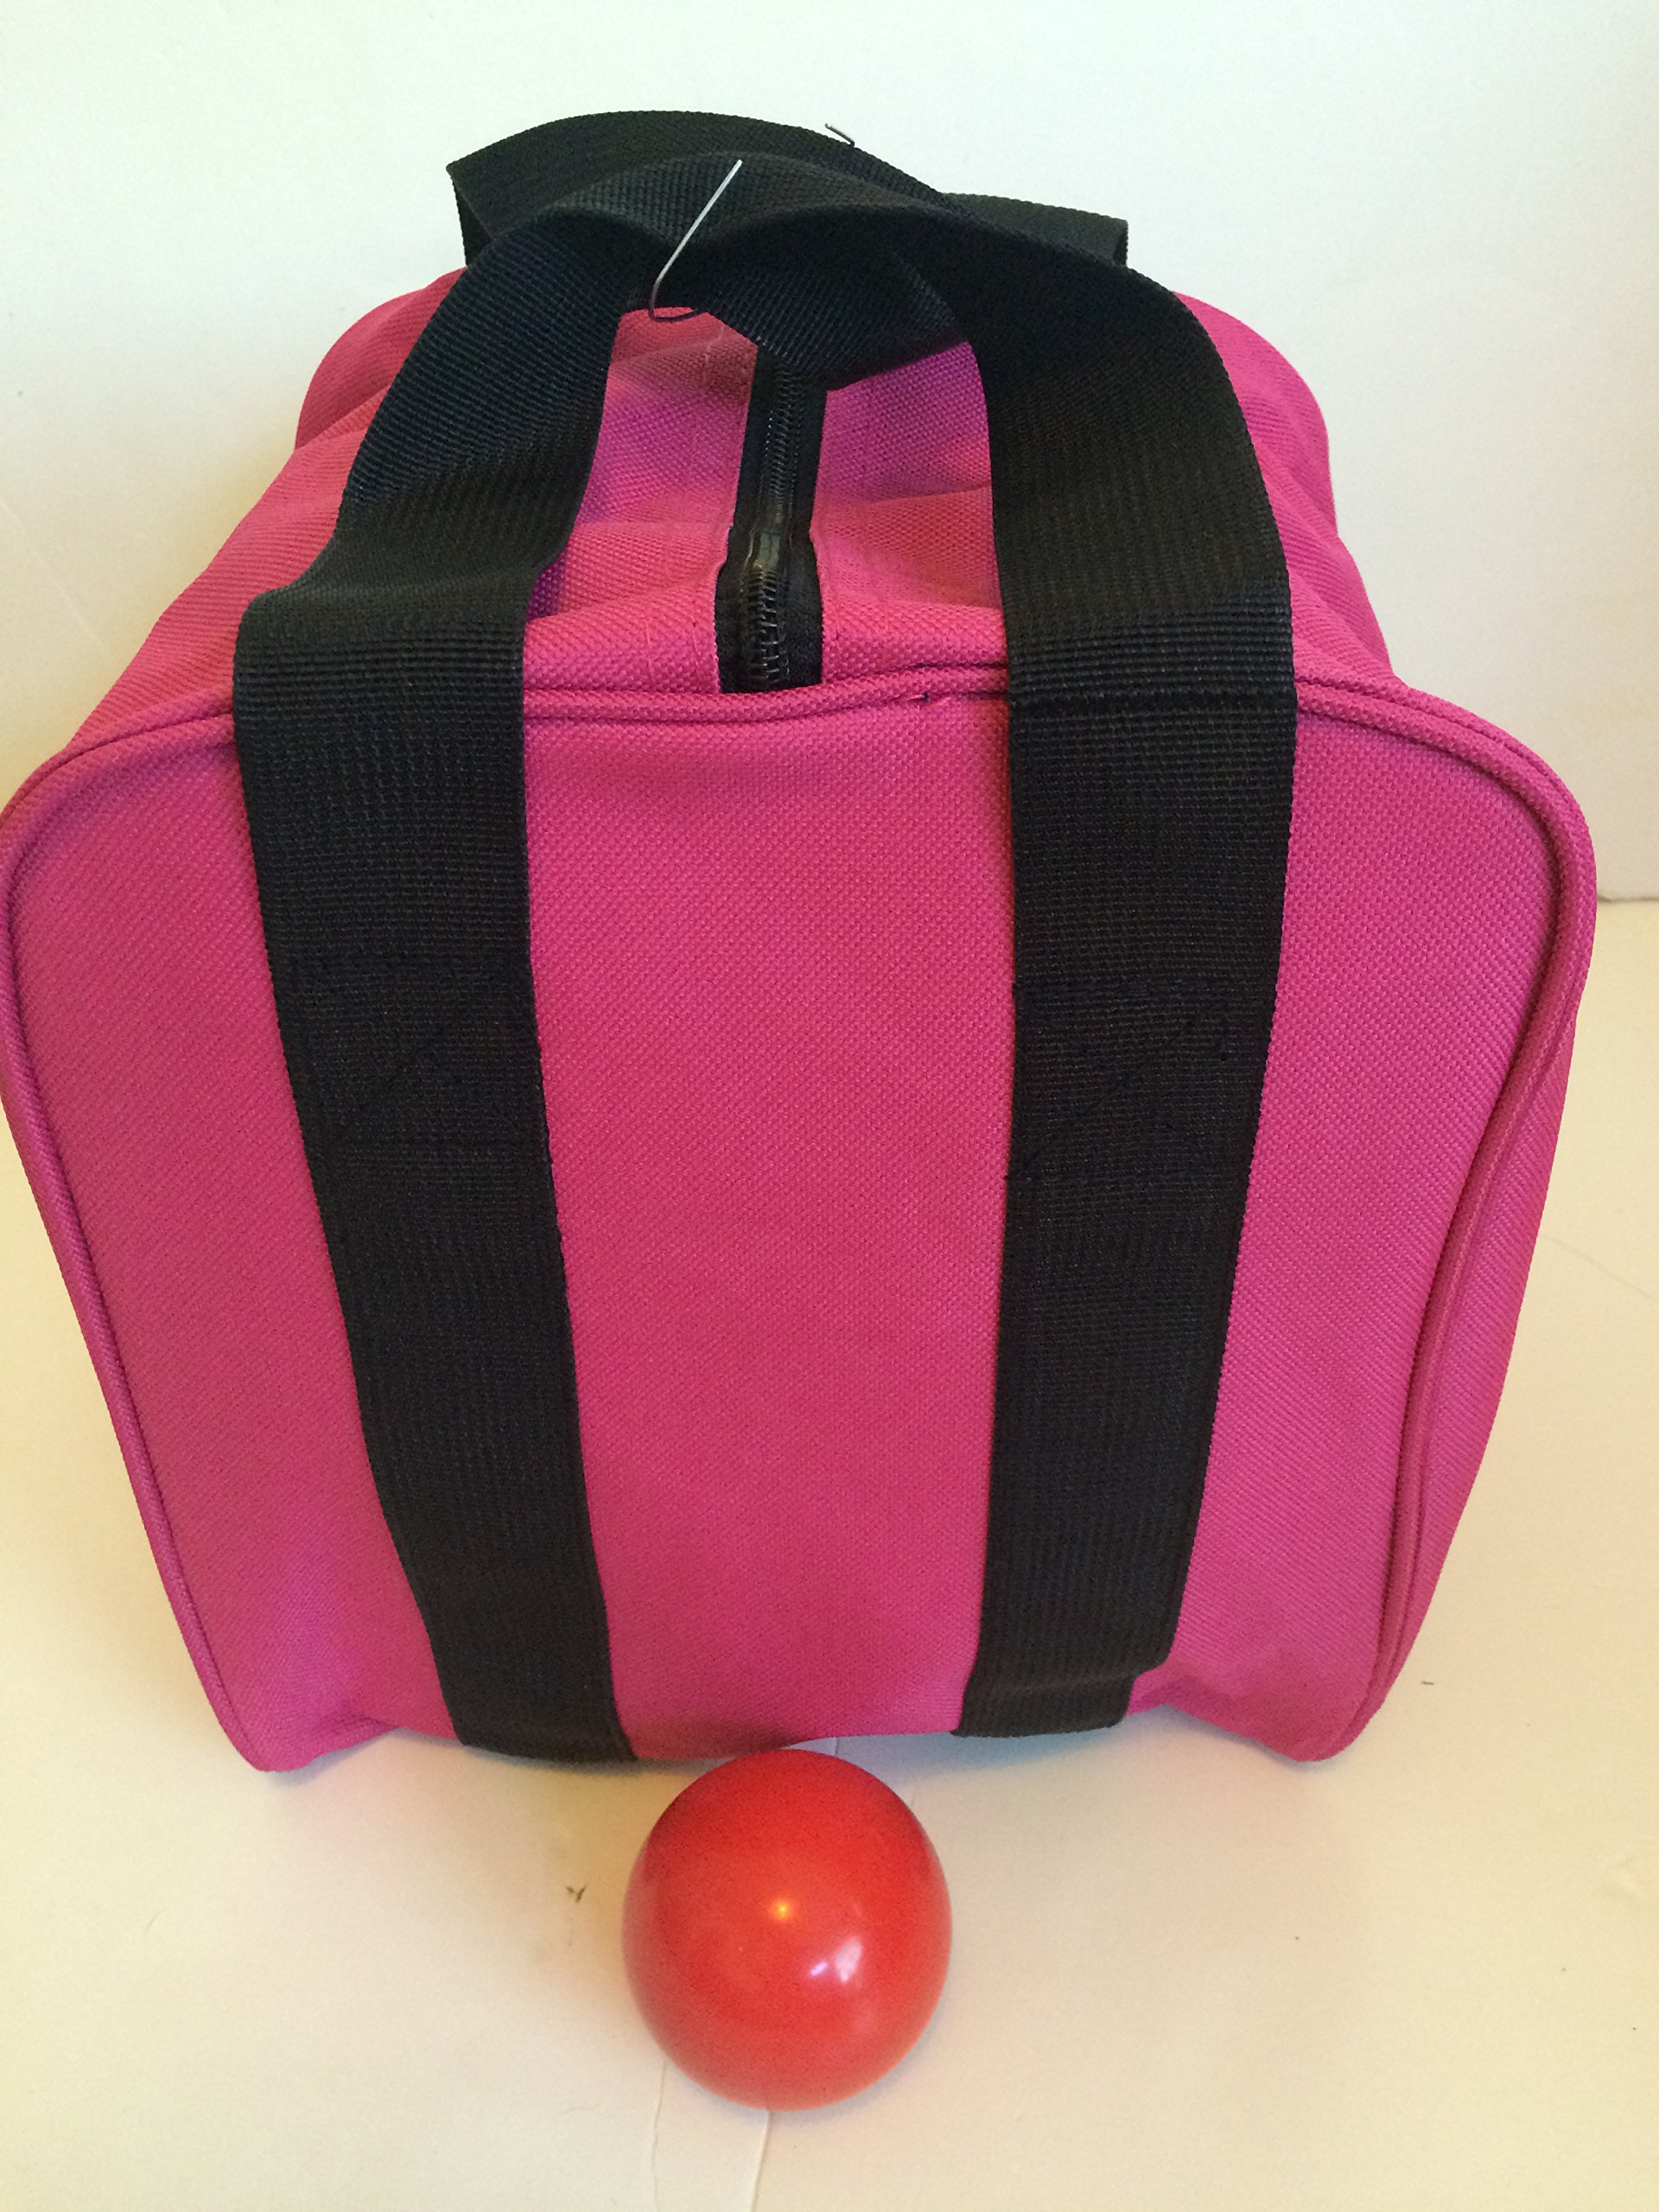 Unique Bocce Accessories Package - Extra Heavy Duty Nylon Bocce Bag (Pink with Black Handles) and Red pallina by BuyBocceBalls